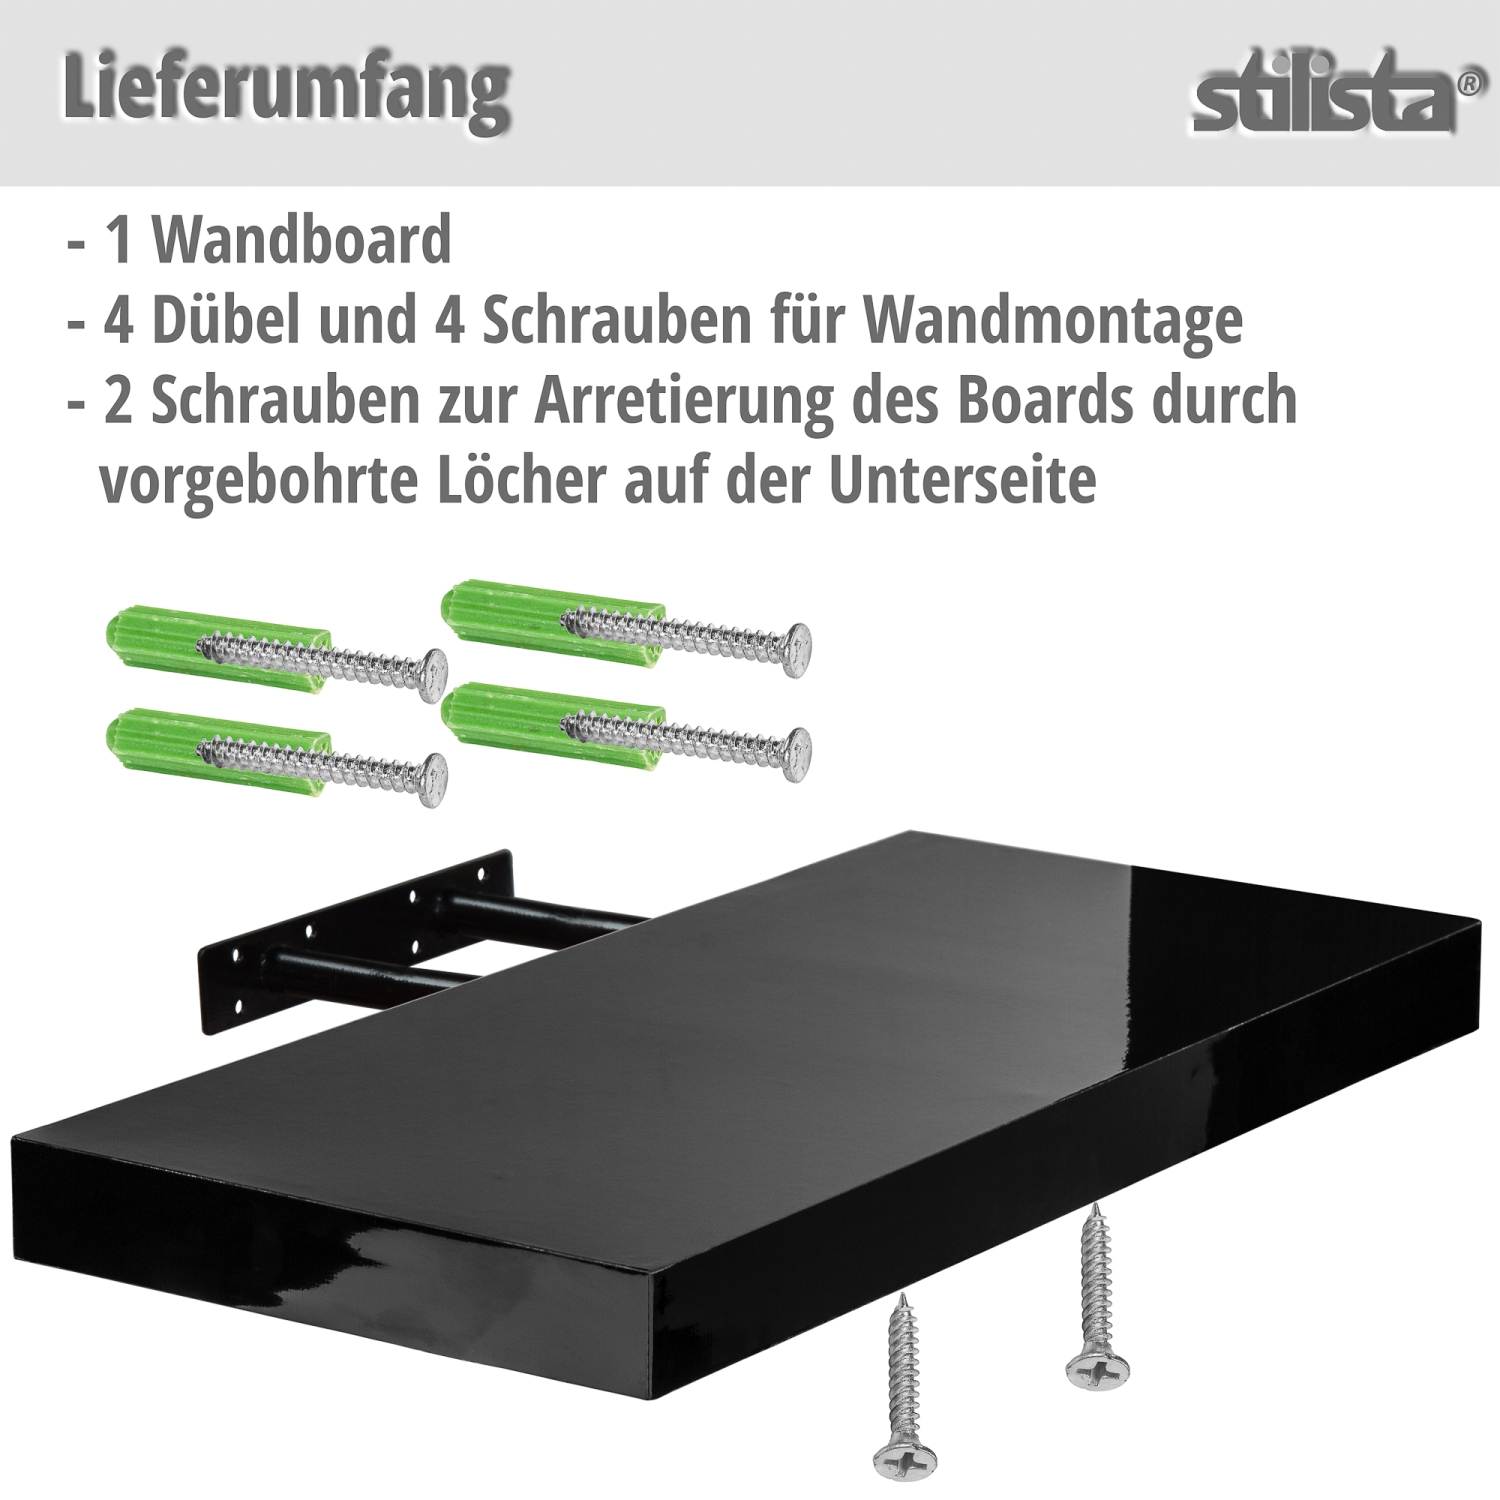 stilista wandboard volato wandregal cd dvd regal 110cm wei hochglanz ebay. Black Bedroom Furniture Sets. Home Design Ideas